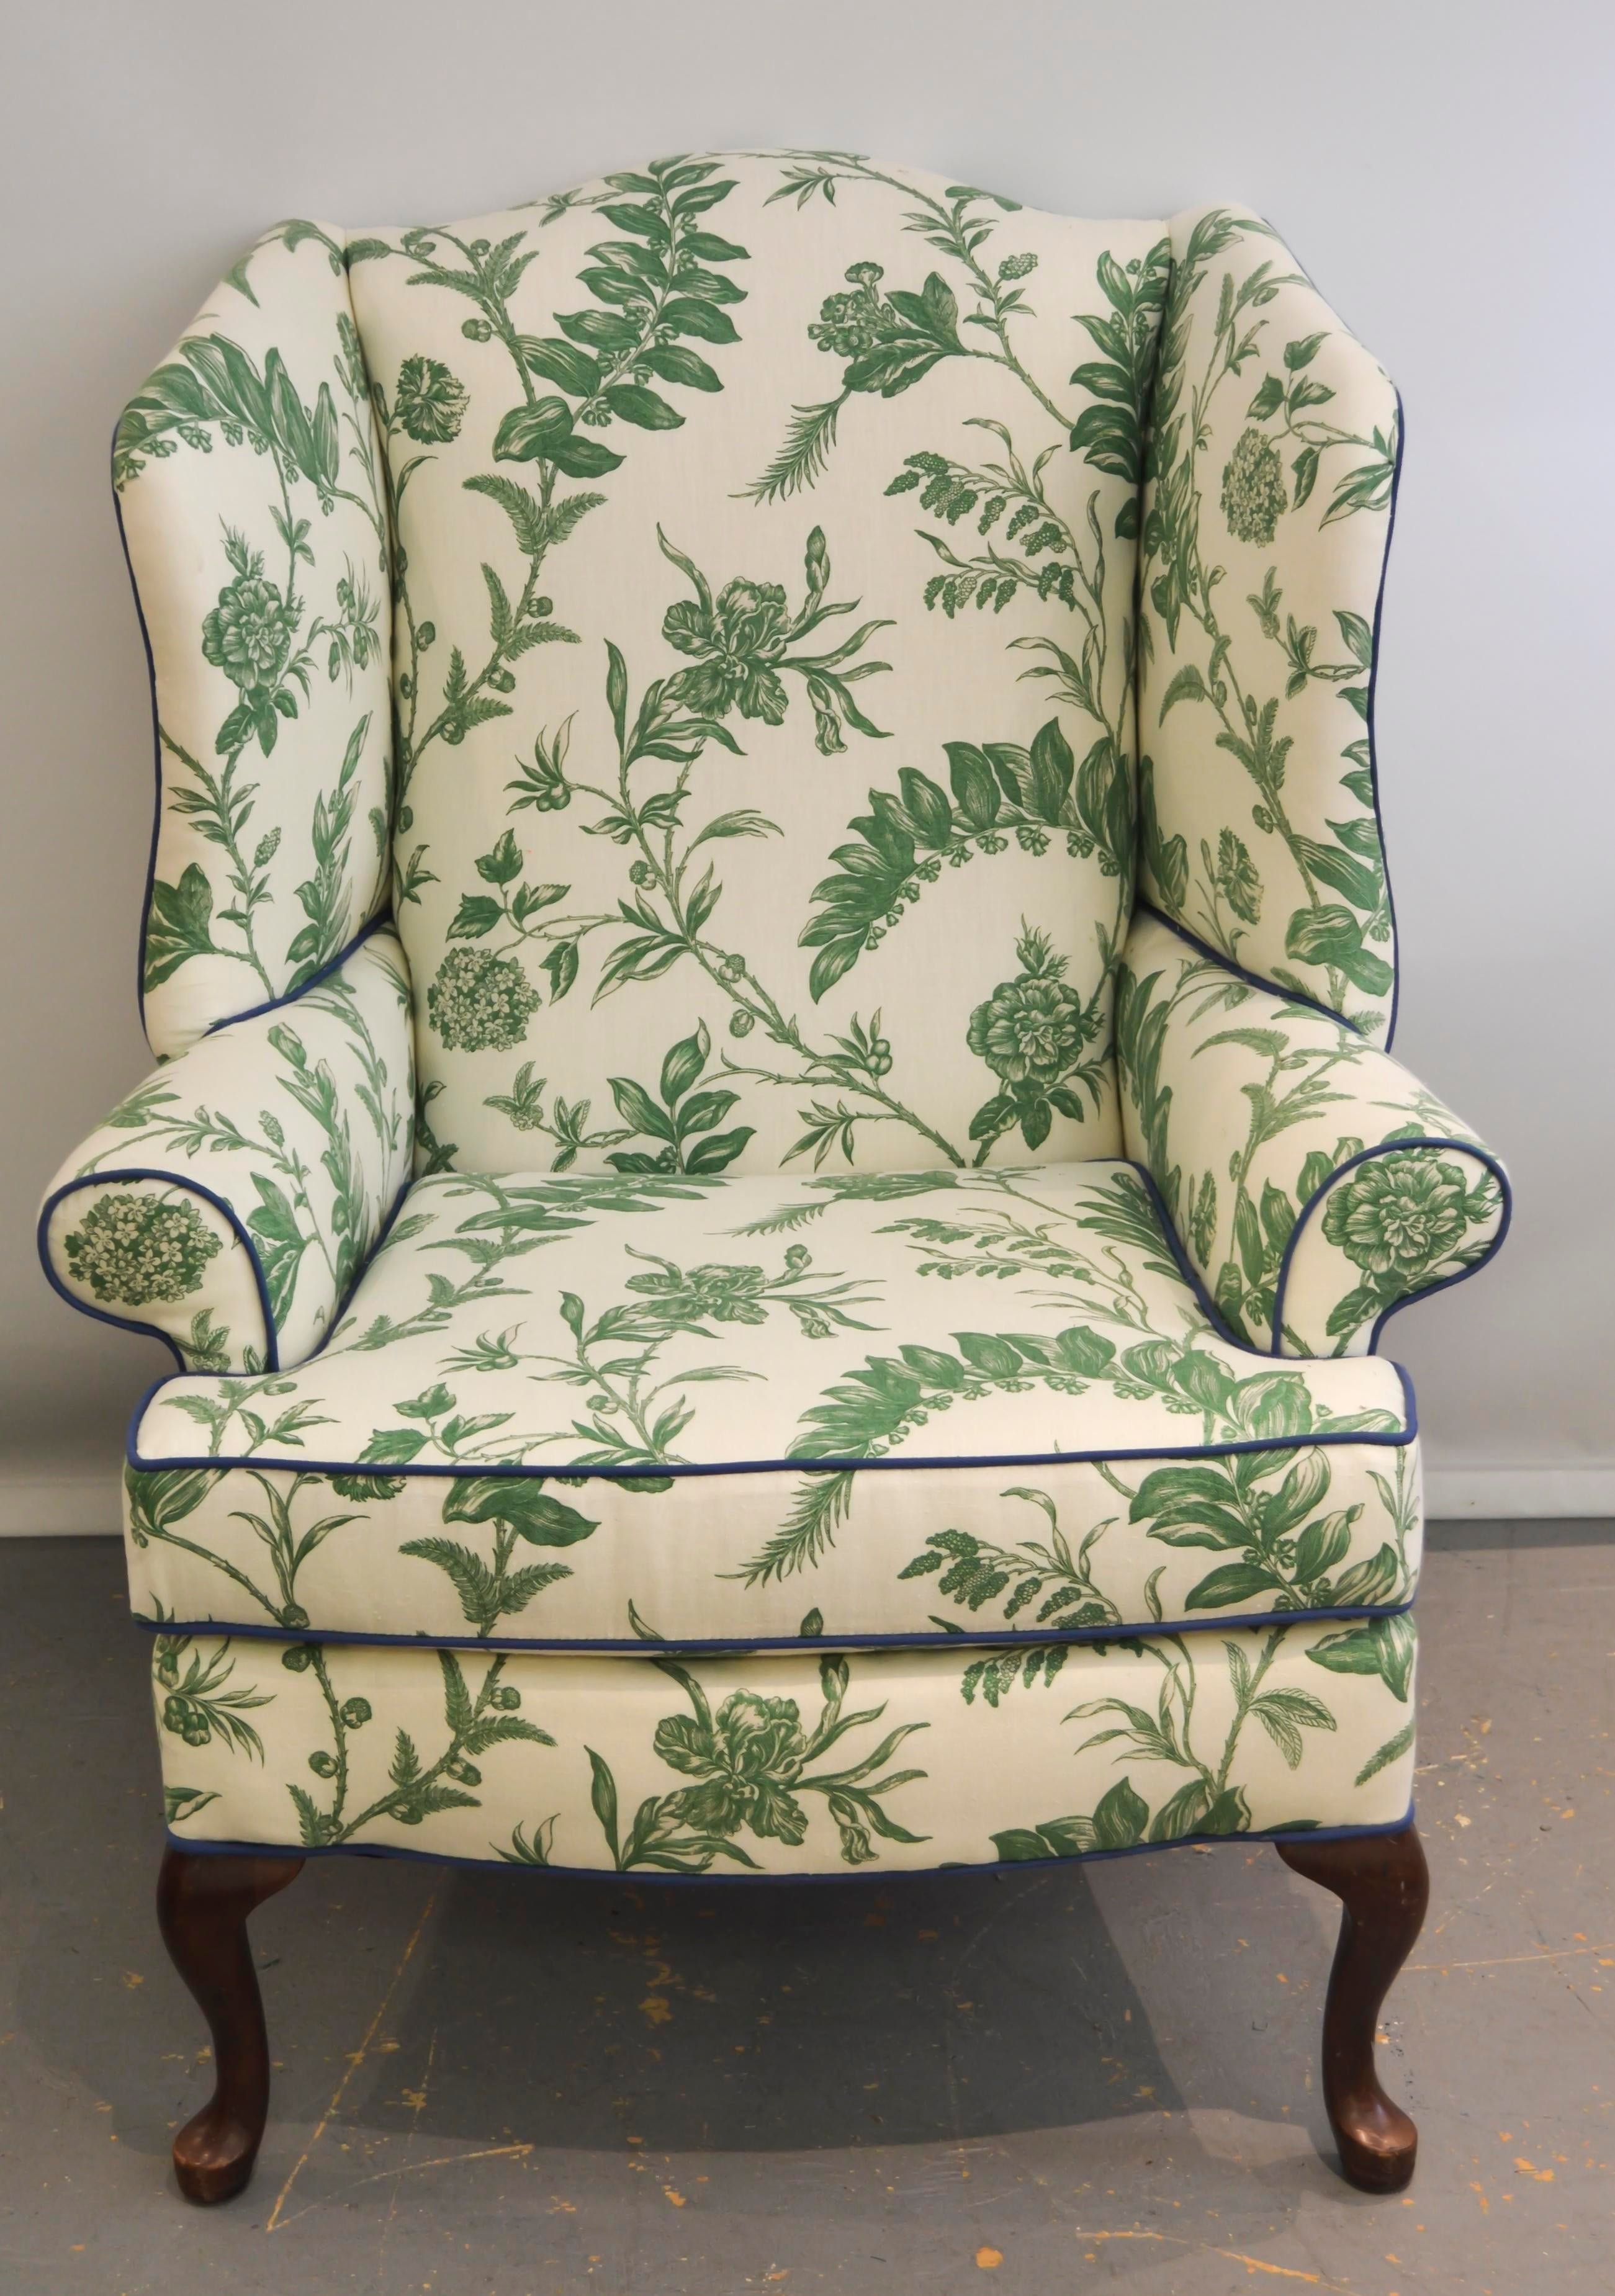 Ordinaire Vintage Robert Allen Williamsburg Wingback Chair   Image 2 Of 5